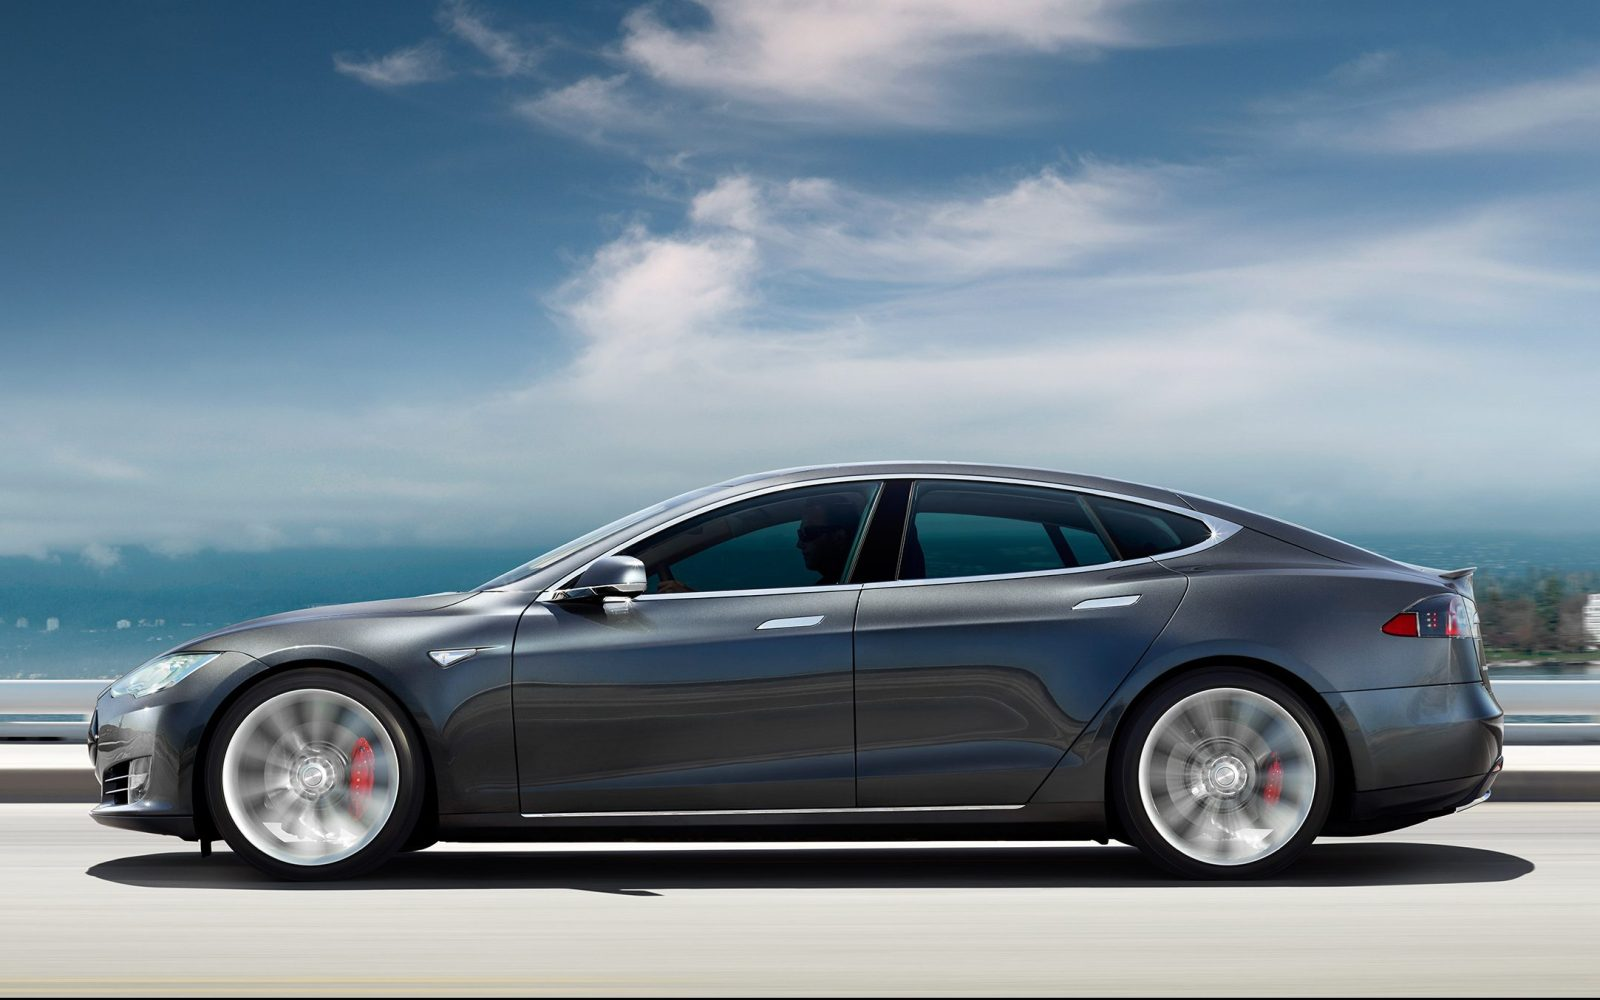 Tesla Model S re-earns Consumer Reports' recommendation on